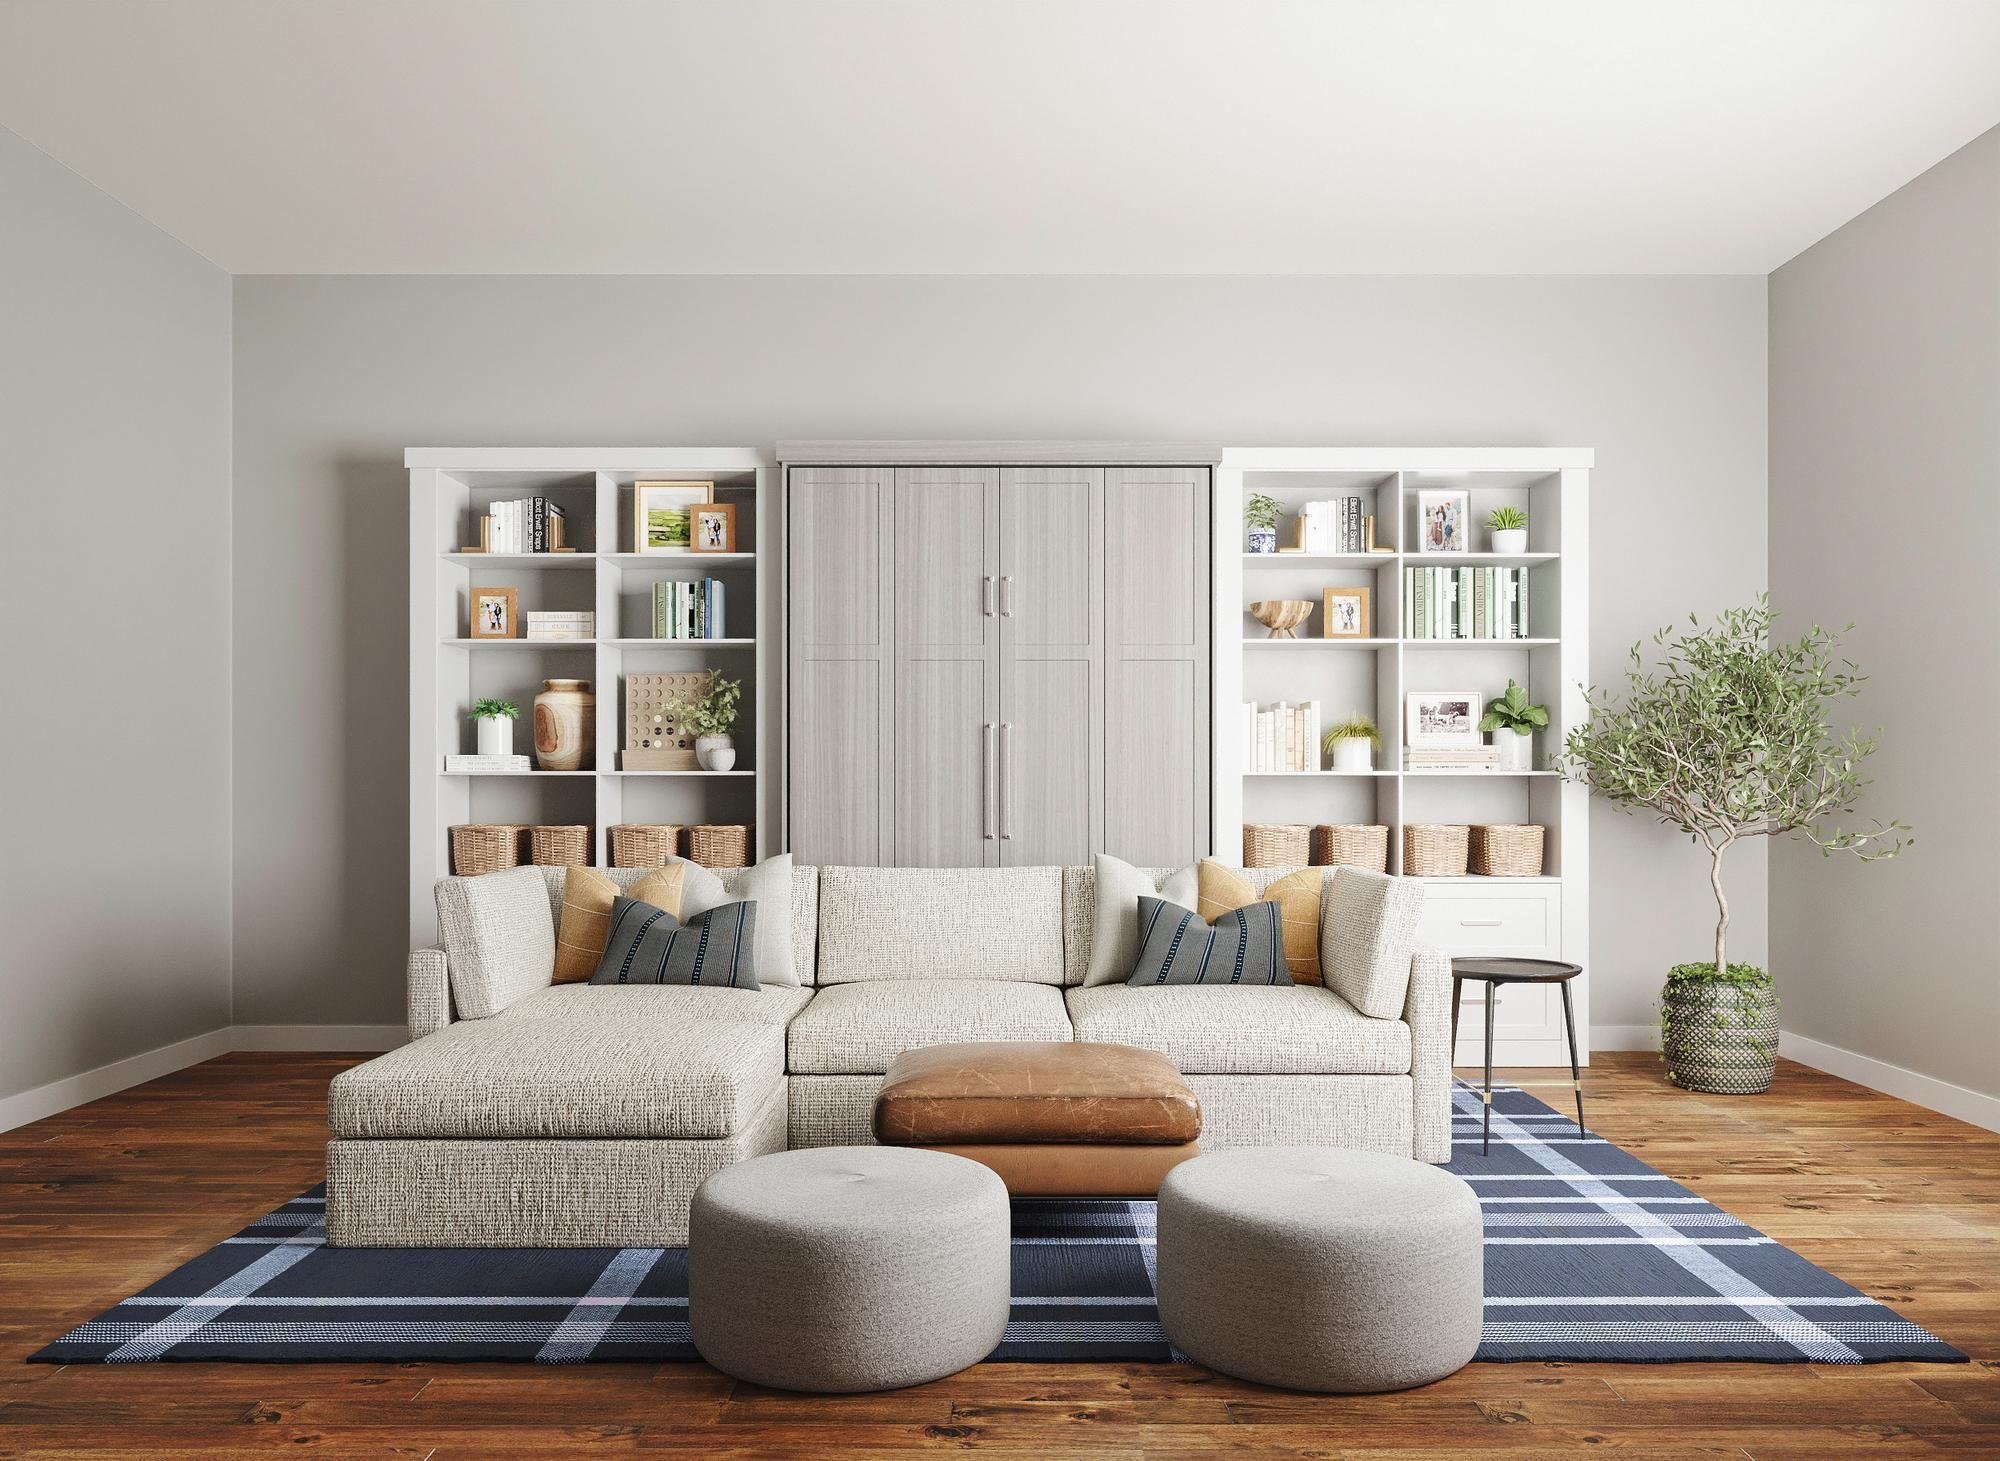 Live In a Studio Apartment? Here Are 5 Tips to Maximize Your Small Living Space.